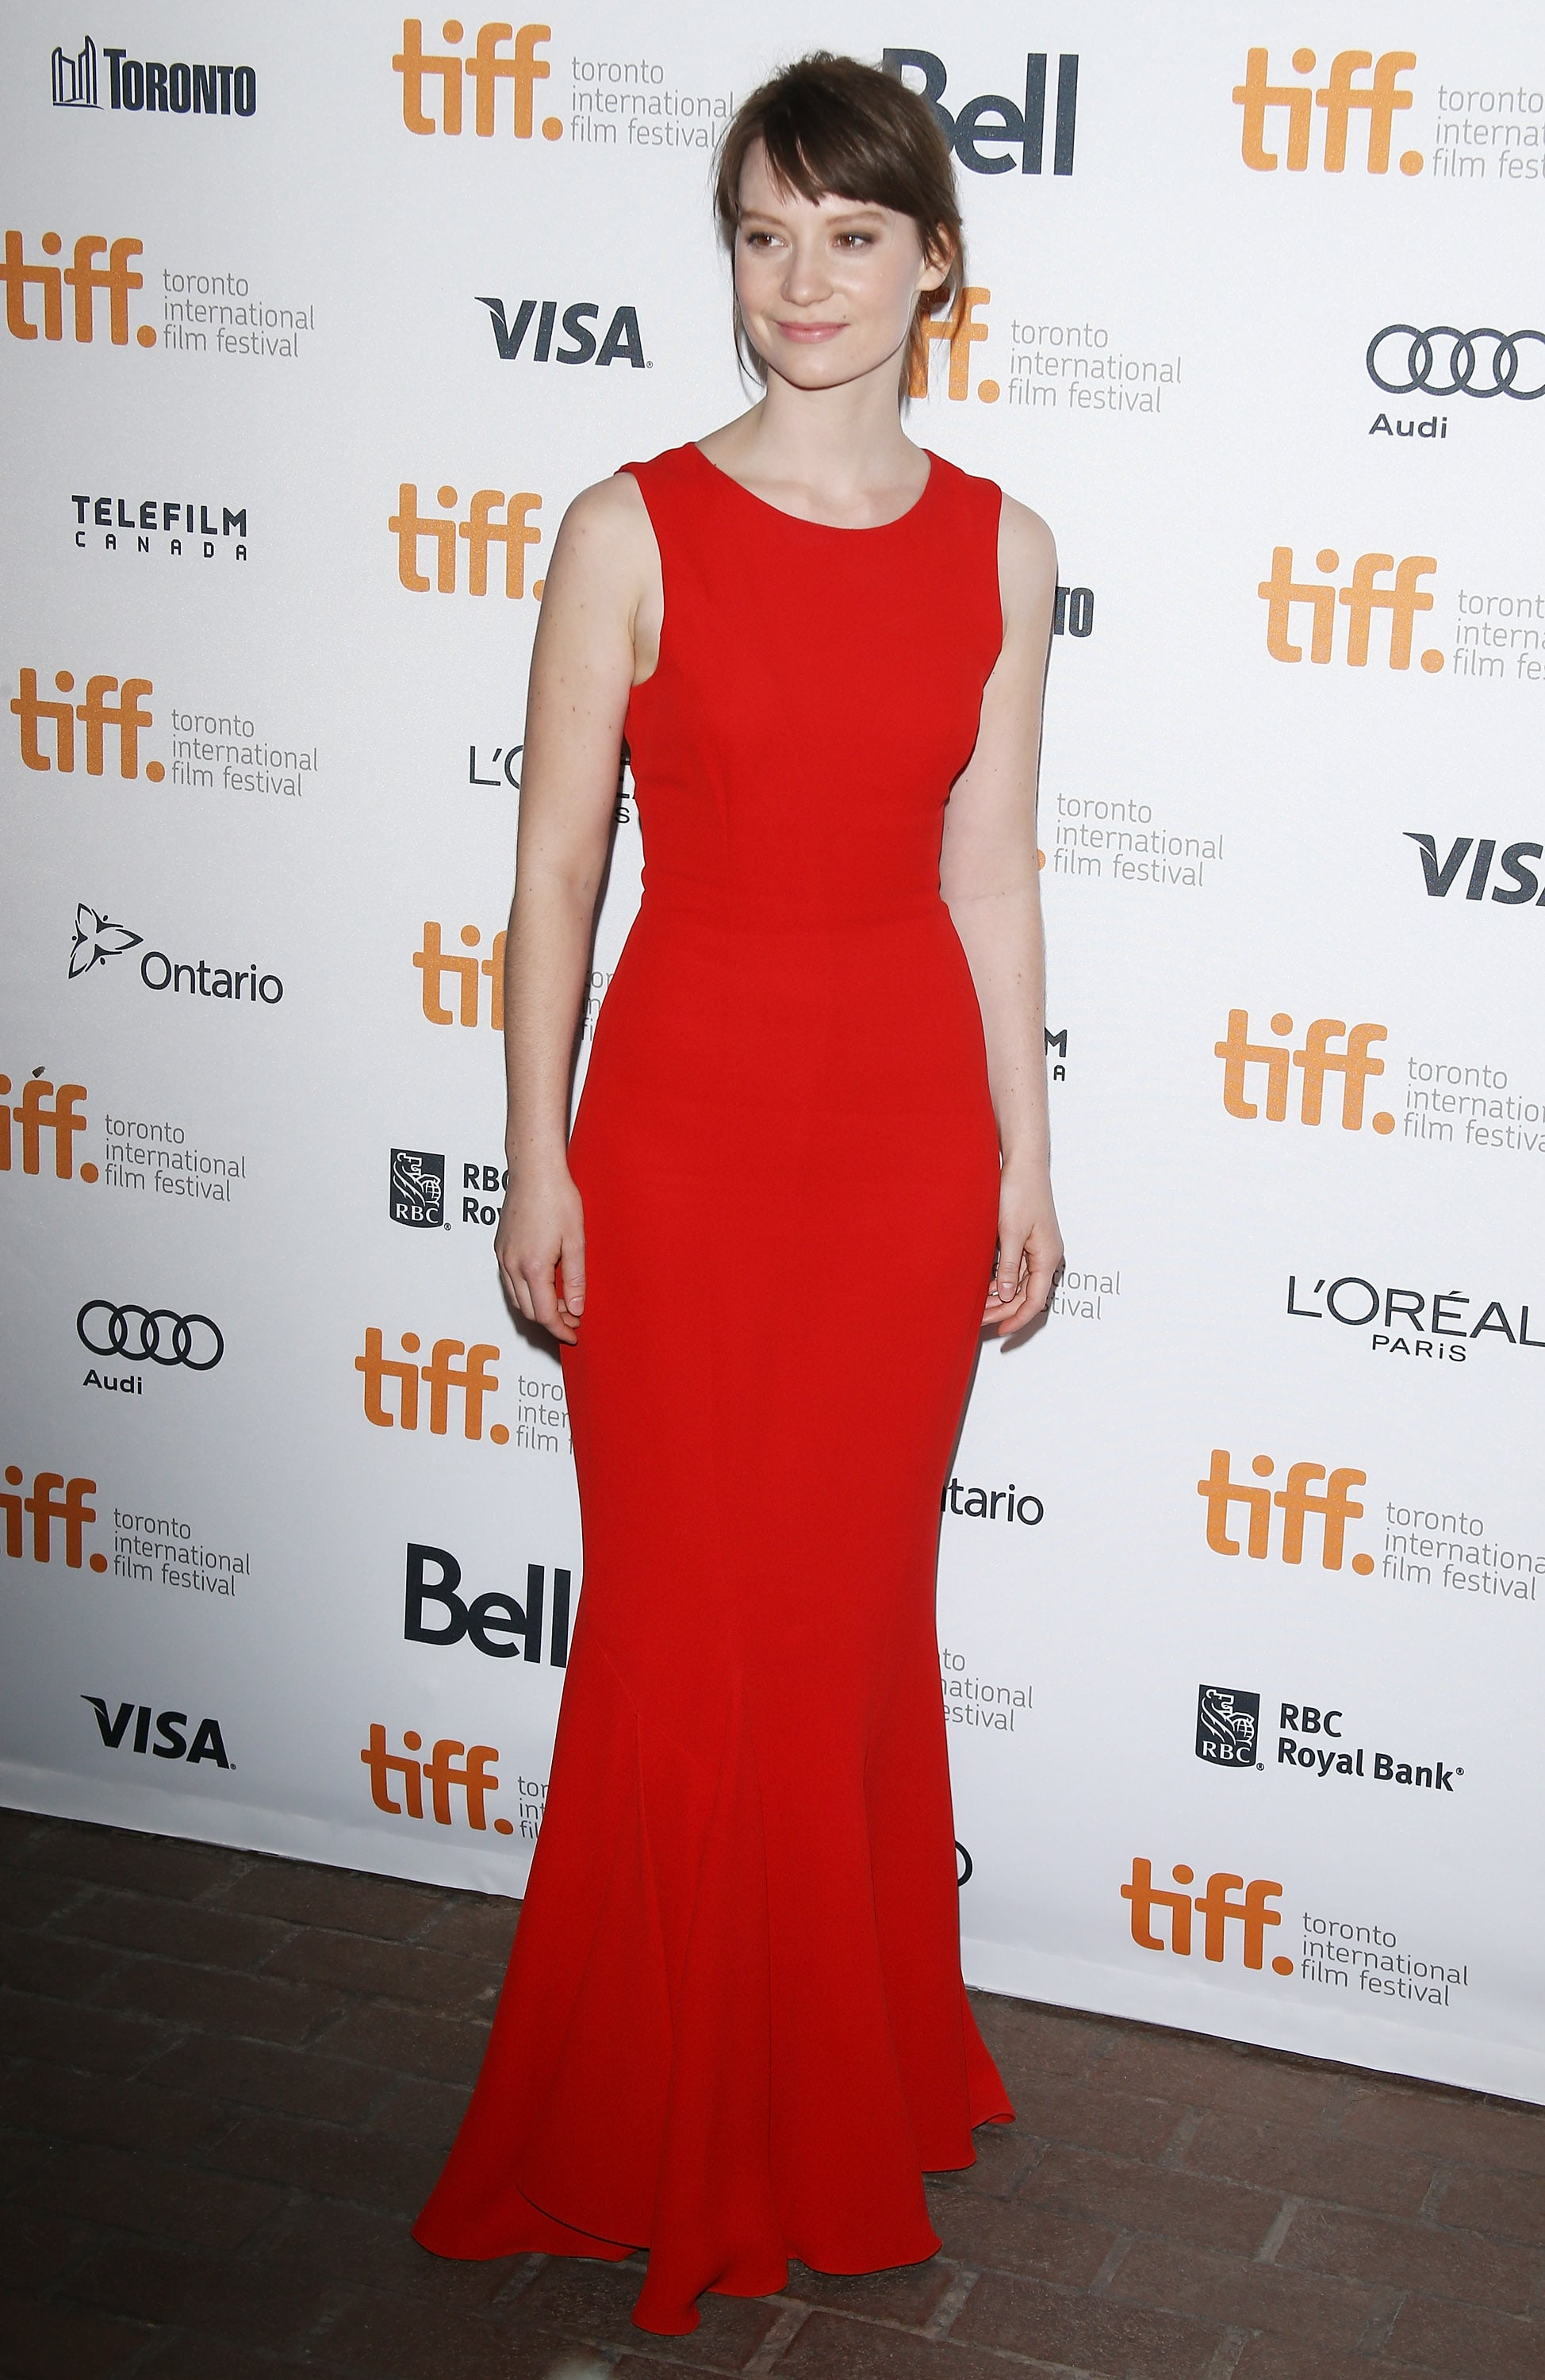 Mia Wasikowska wore a red Dior frock for the premiere of Only Lovers Left Alive.